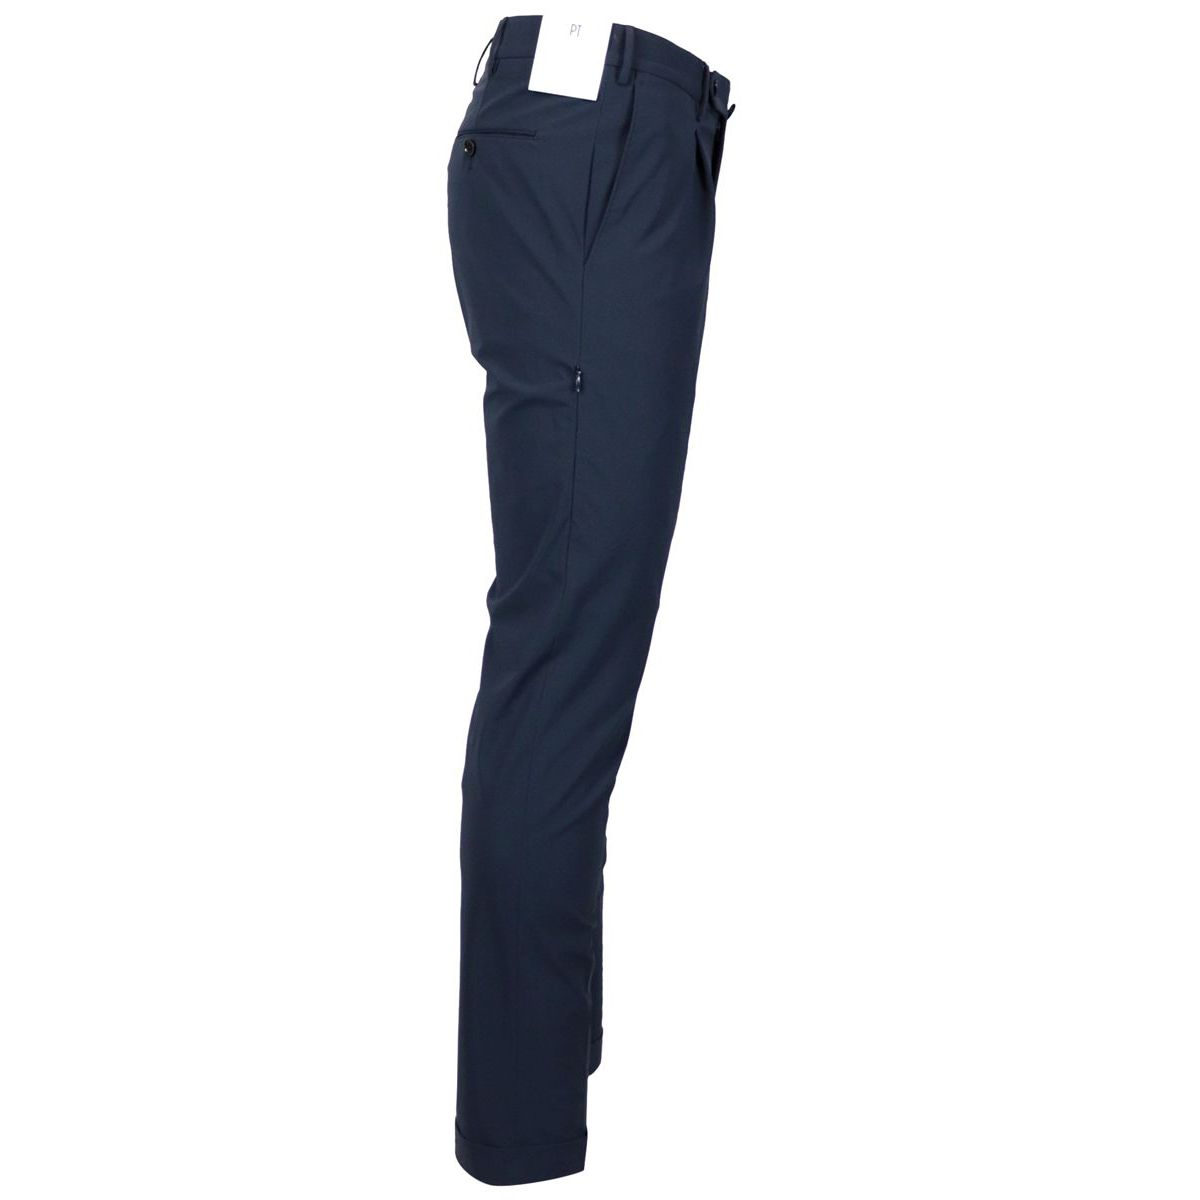 Skinny trousers in technical fabric with pleats and additional side pocket Blue PT TORINO